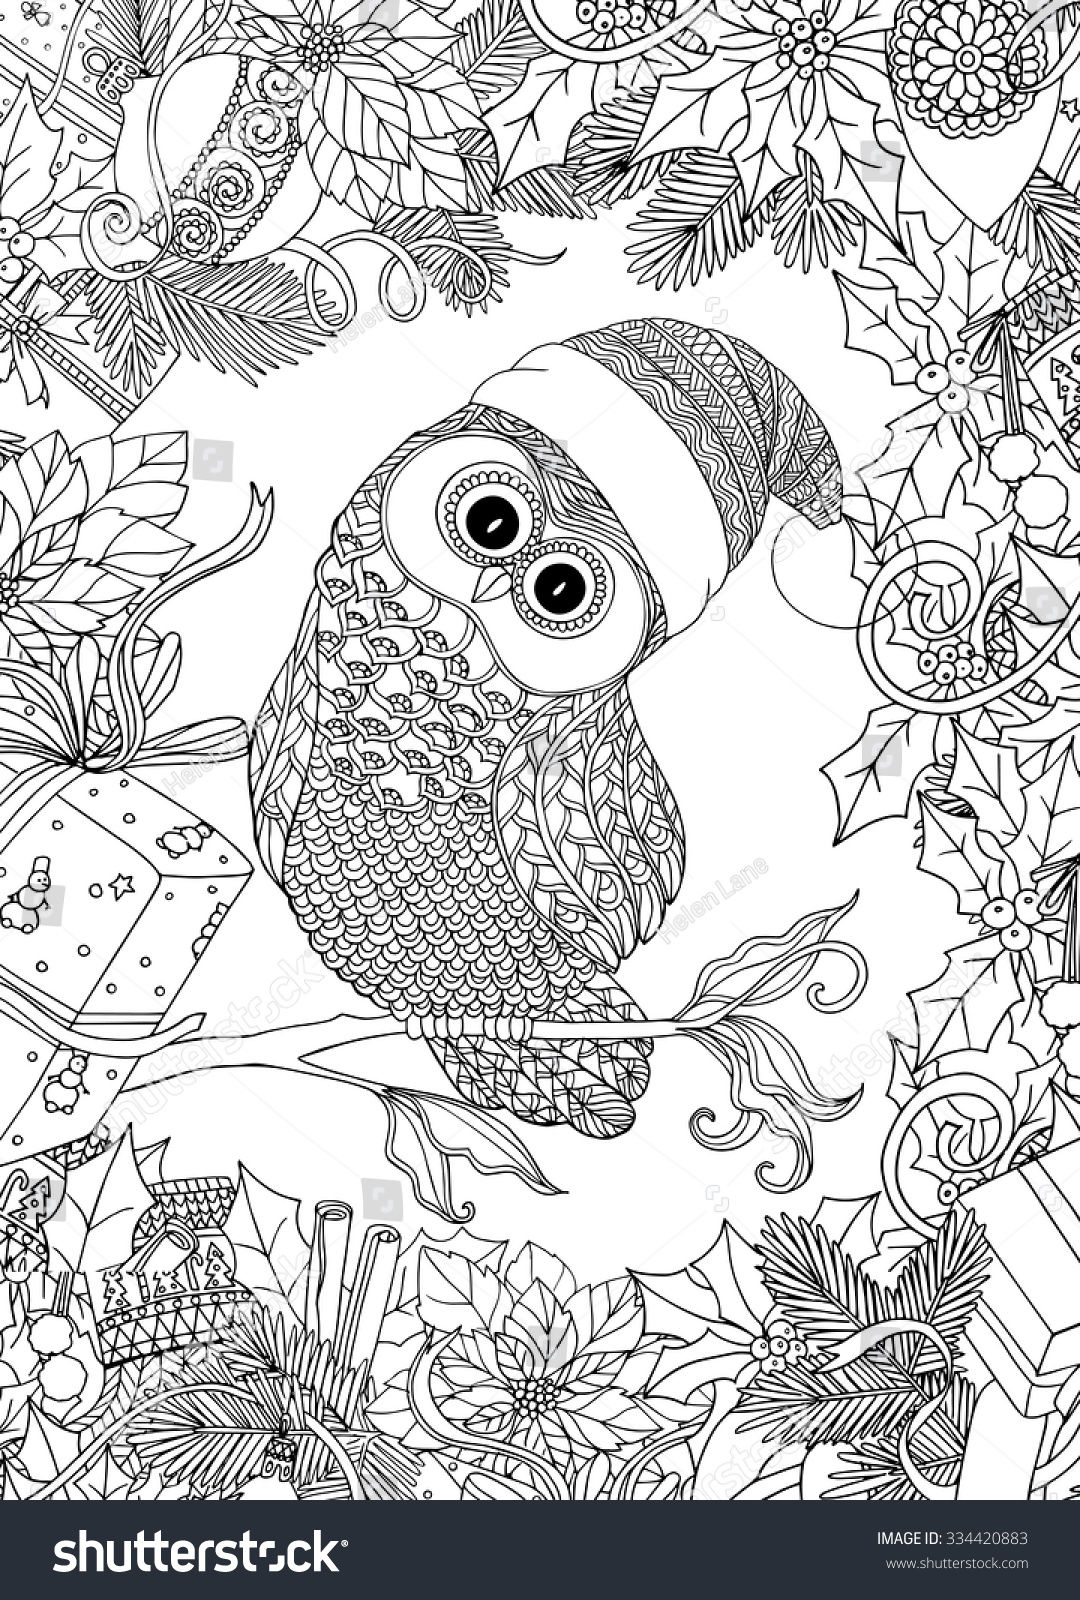 Cute Owl Coloring Pages For Adults